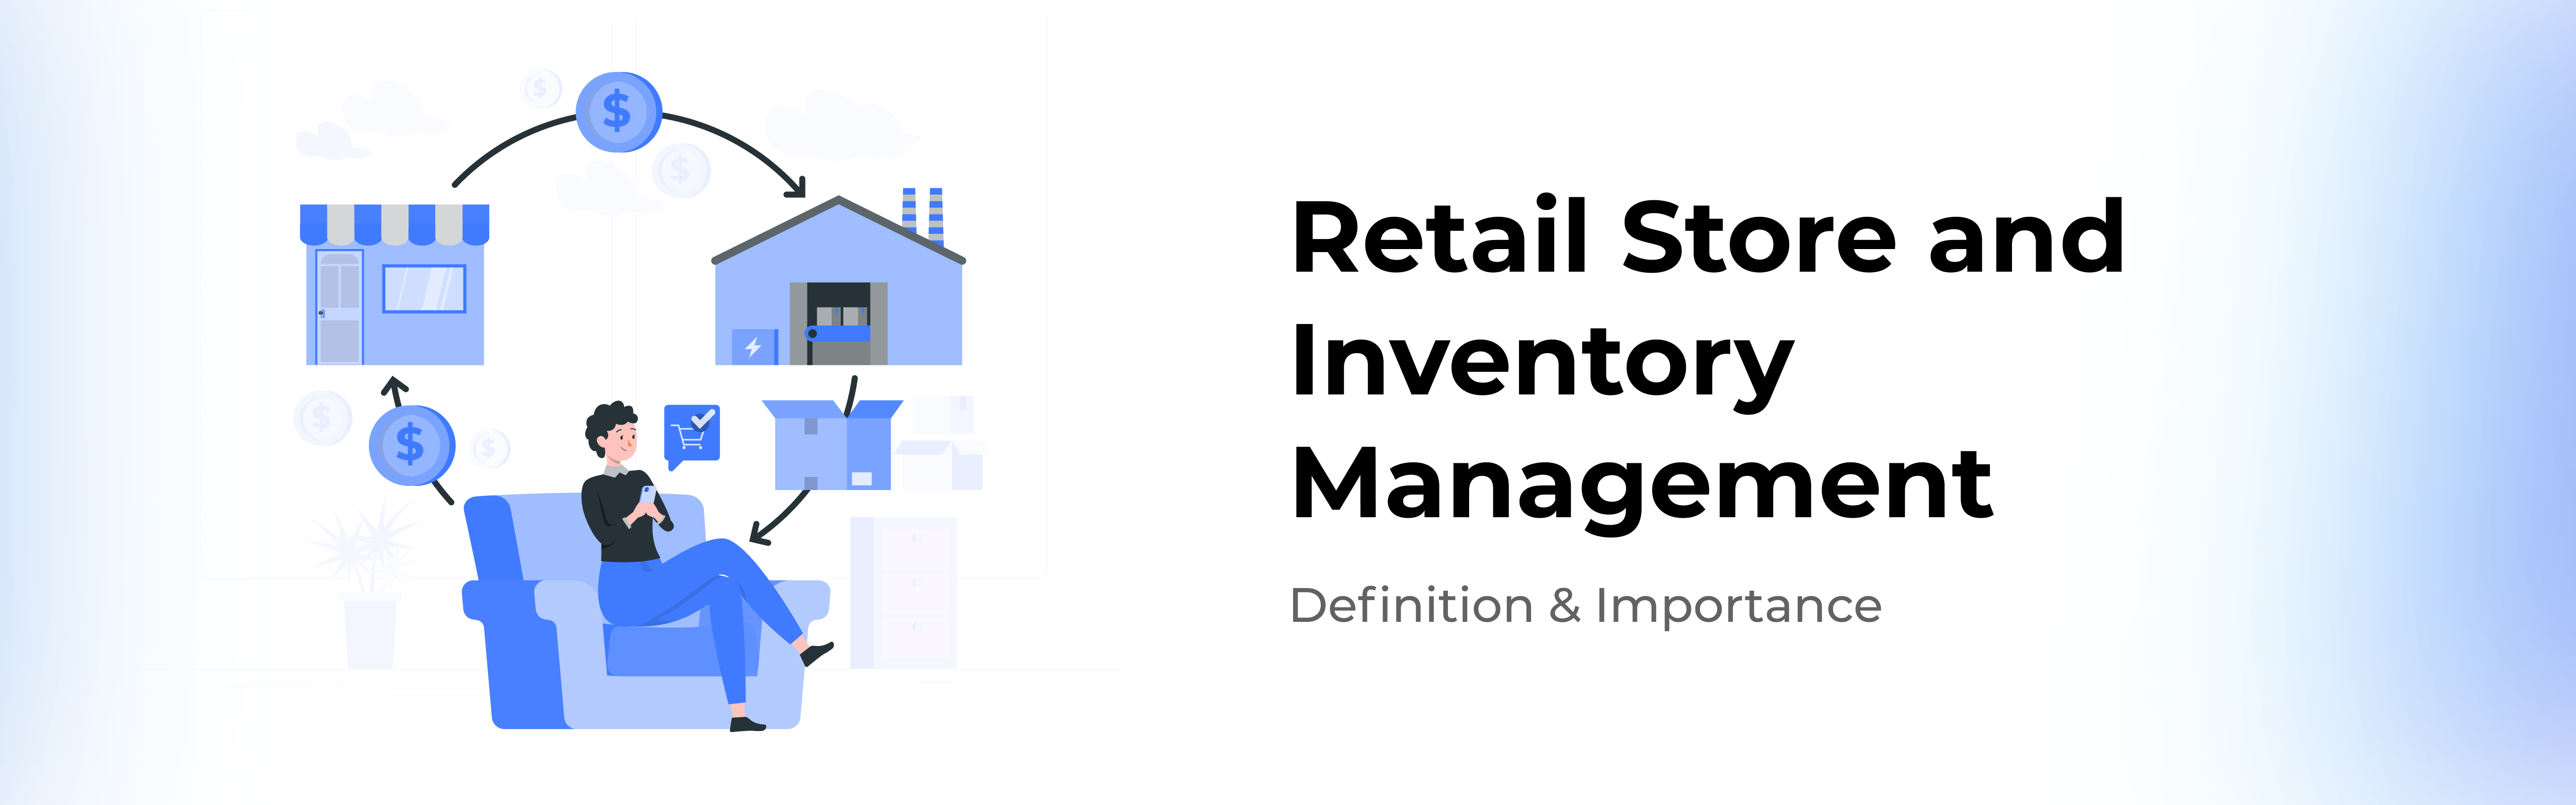 retail-store-management-and-inventory-management